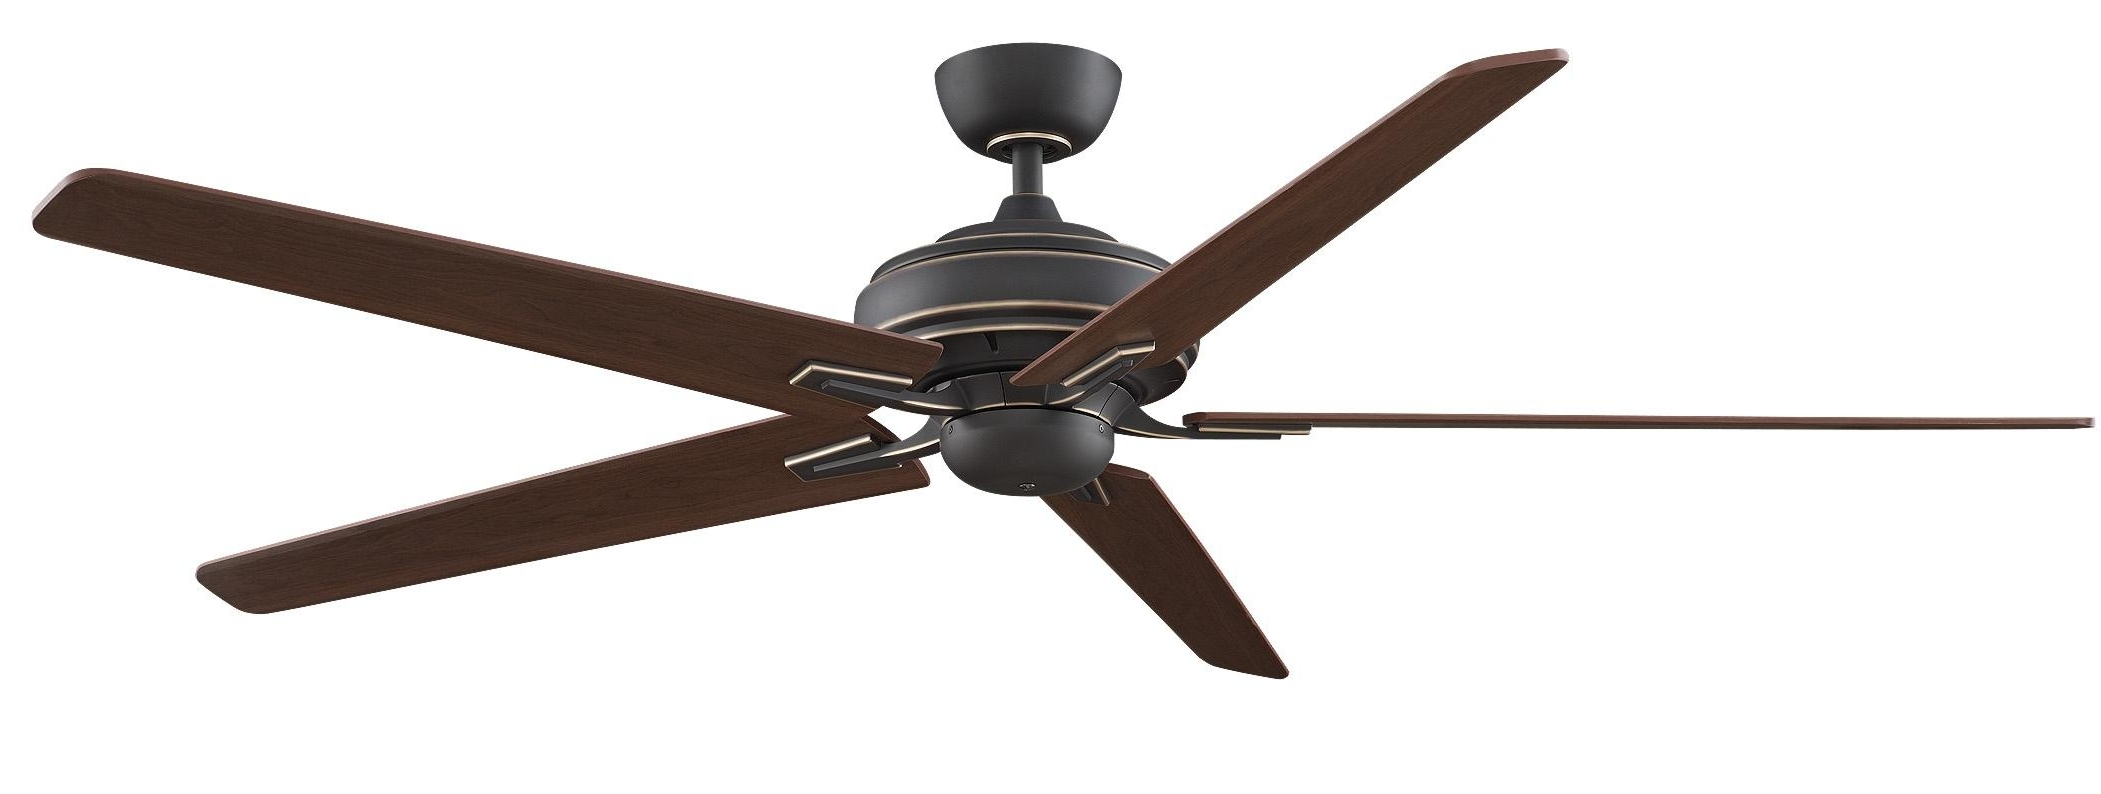 Brown Outdoor Ceiling Fan With Light In 2019 Inch Outdoor Ceiling Fan With 60 Ceiling Fan With Light (View 15 of 20)